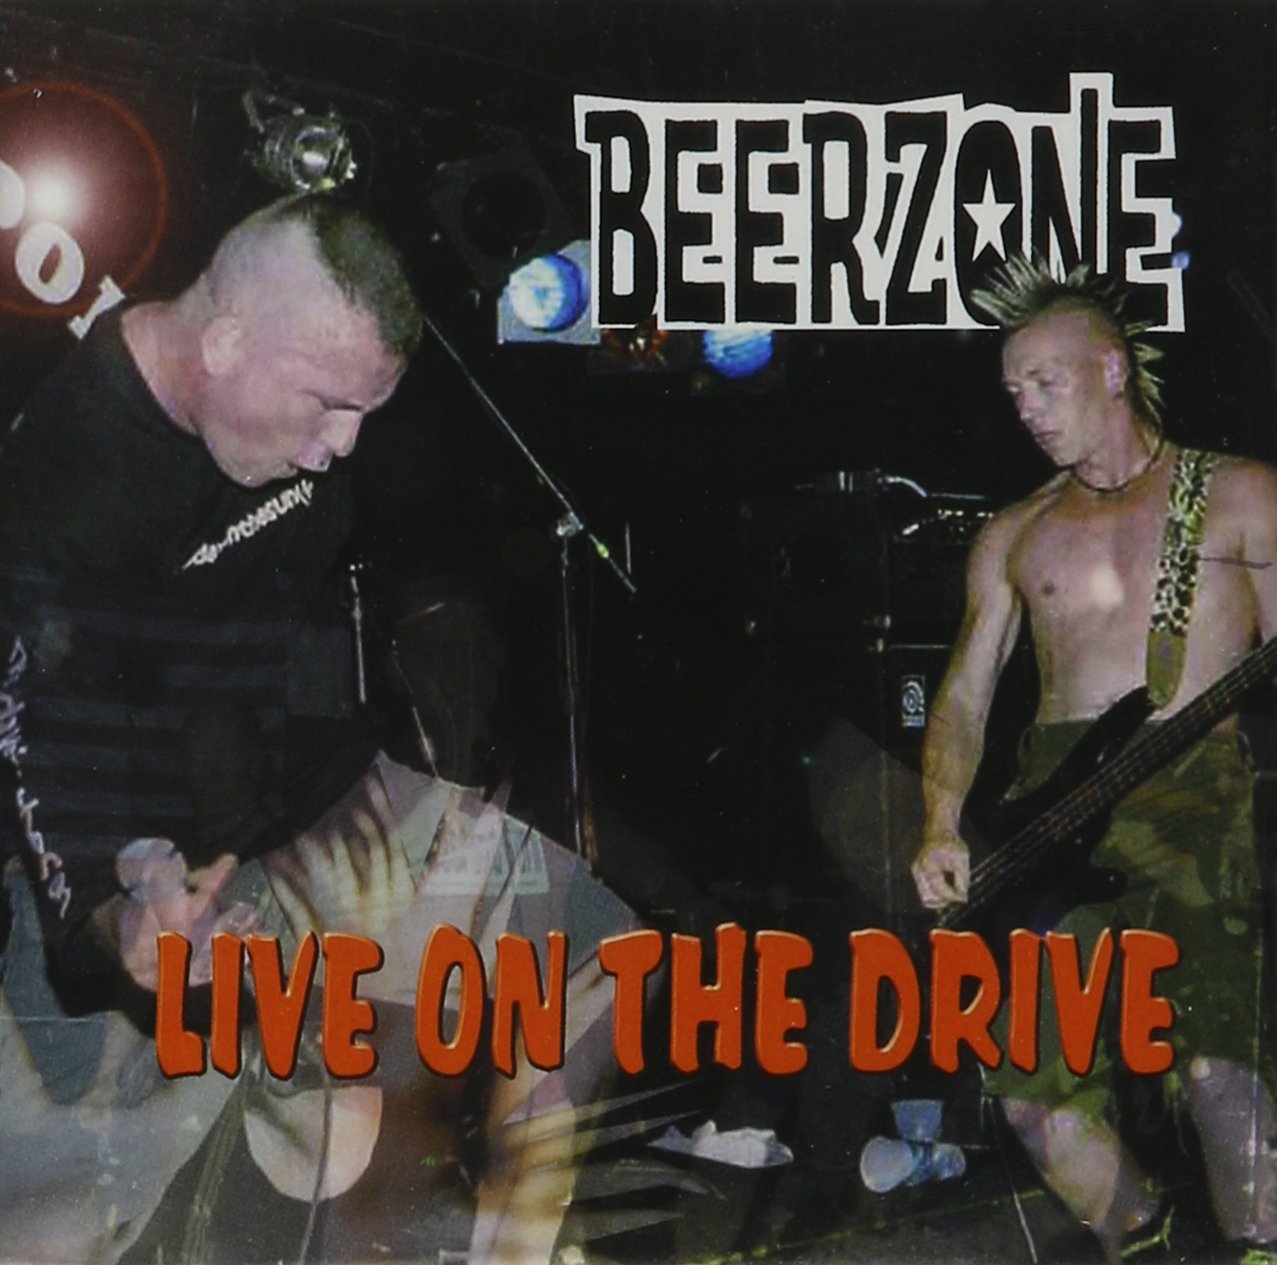 Live on the Drive by Beerzone